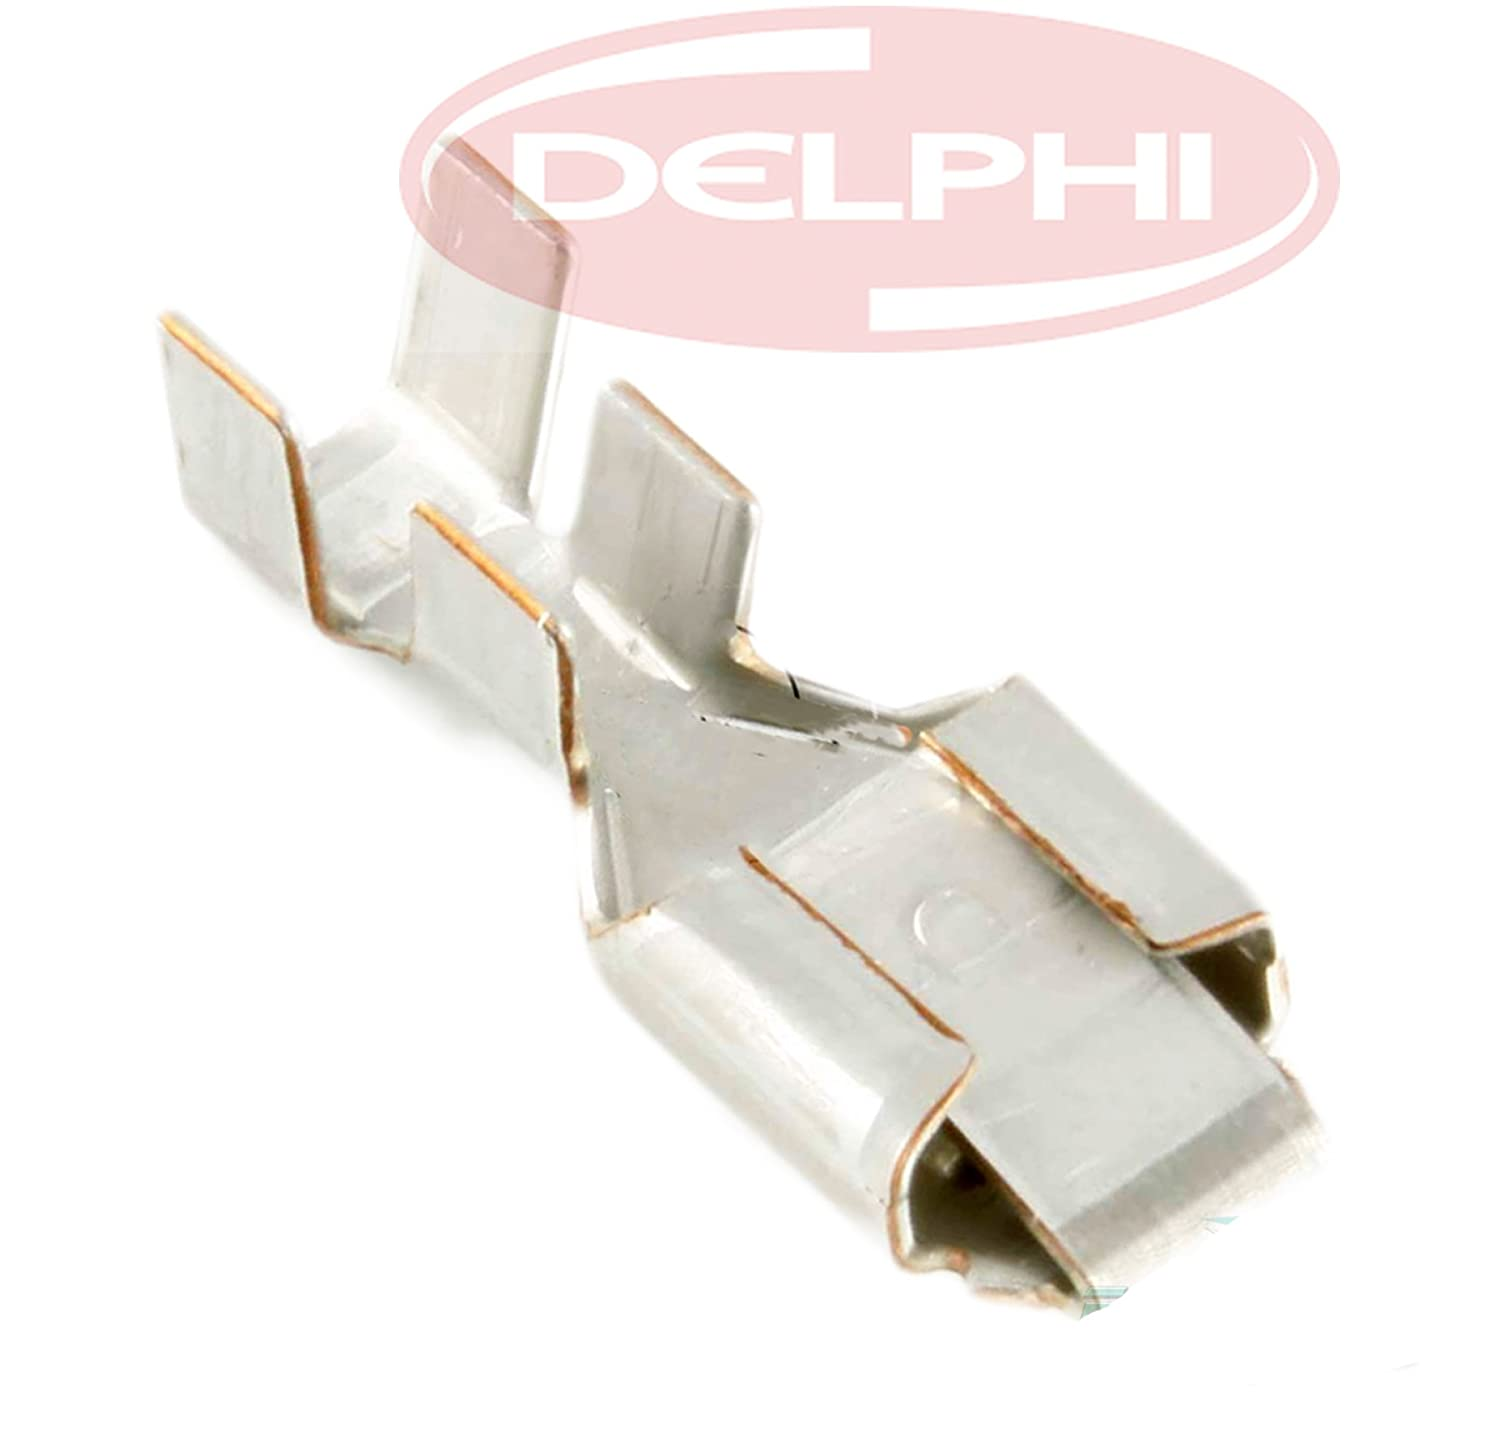 Delphi GM Metri-Pack 56 Series, Female Terminal 14 16 GA (Pack of 12) Delphi Connection Systems